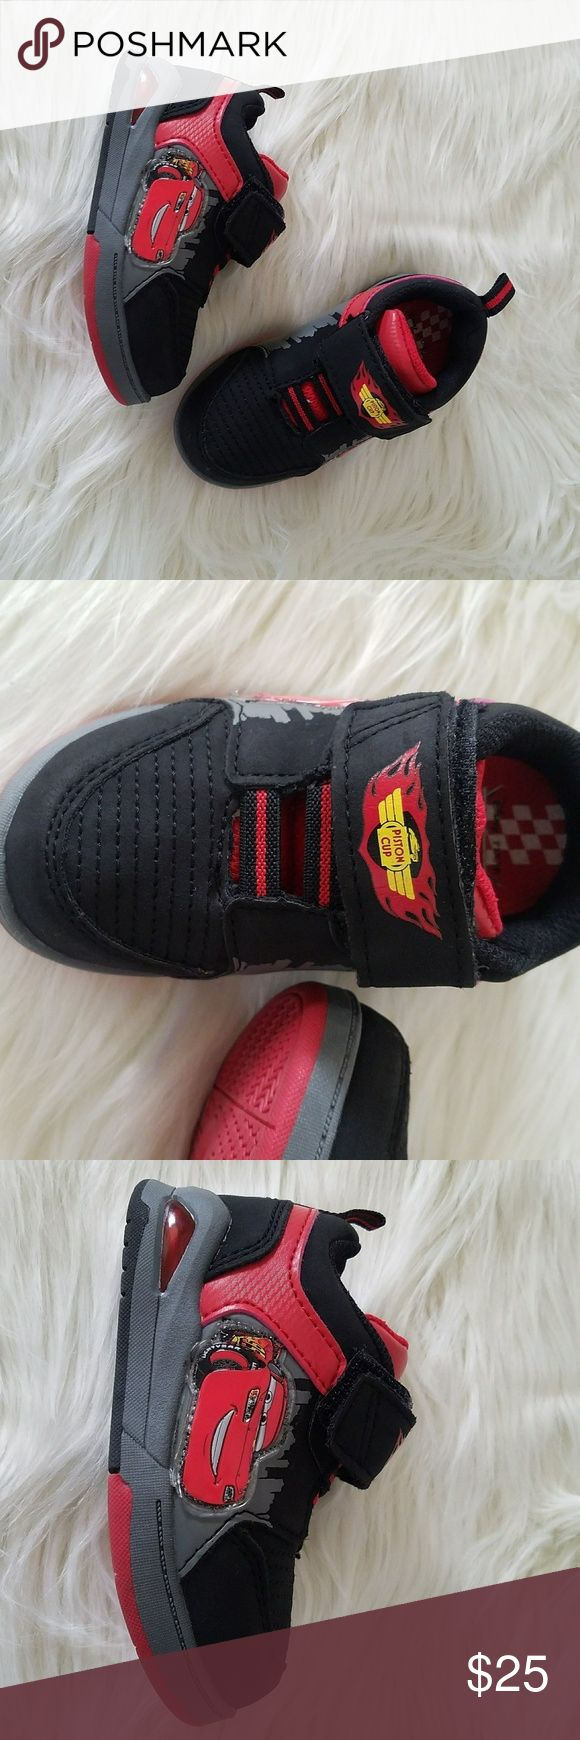 """Disney Pixar Cars Lightning McQueen Toddler Shoes Disney Pixar Cars Lightning McQueen Toddler Boy Shoes With Lights Red Black Sz 6  Style No. CARA14S179B-1 Style Name: Cars  Brand new without box. No box included.  outsole length 6"""" outsole wide 2.5"""" Disney Shoes Baby & Walker"""